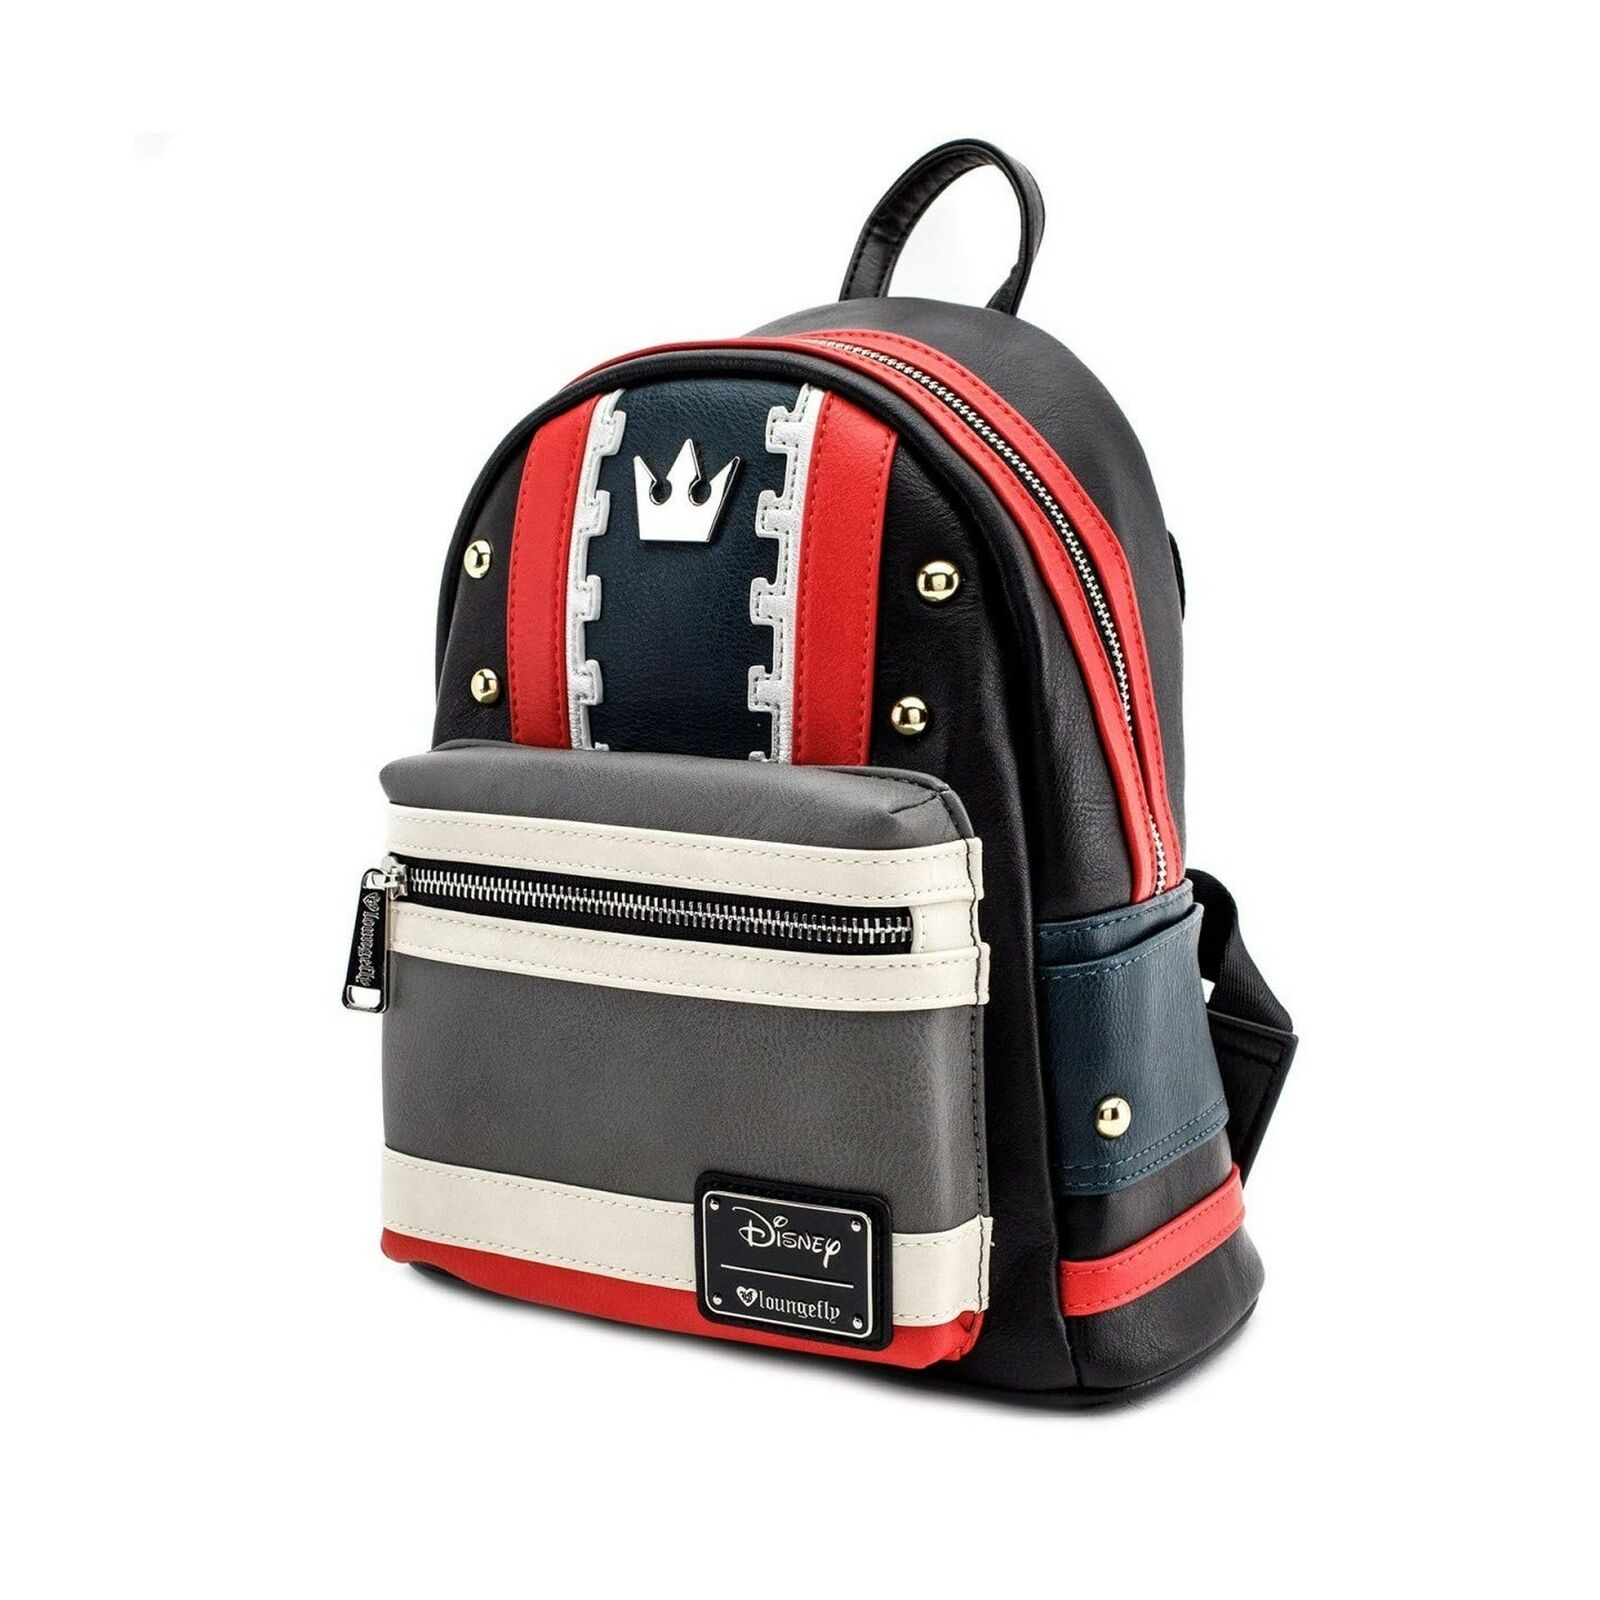 Loungefly Kingdom Hearts Mini Backpack